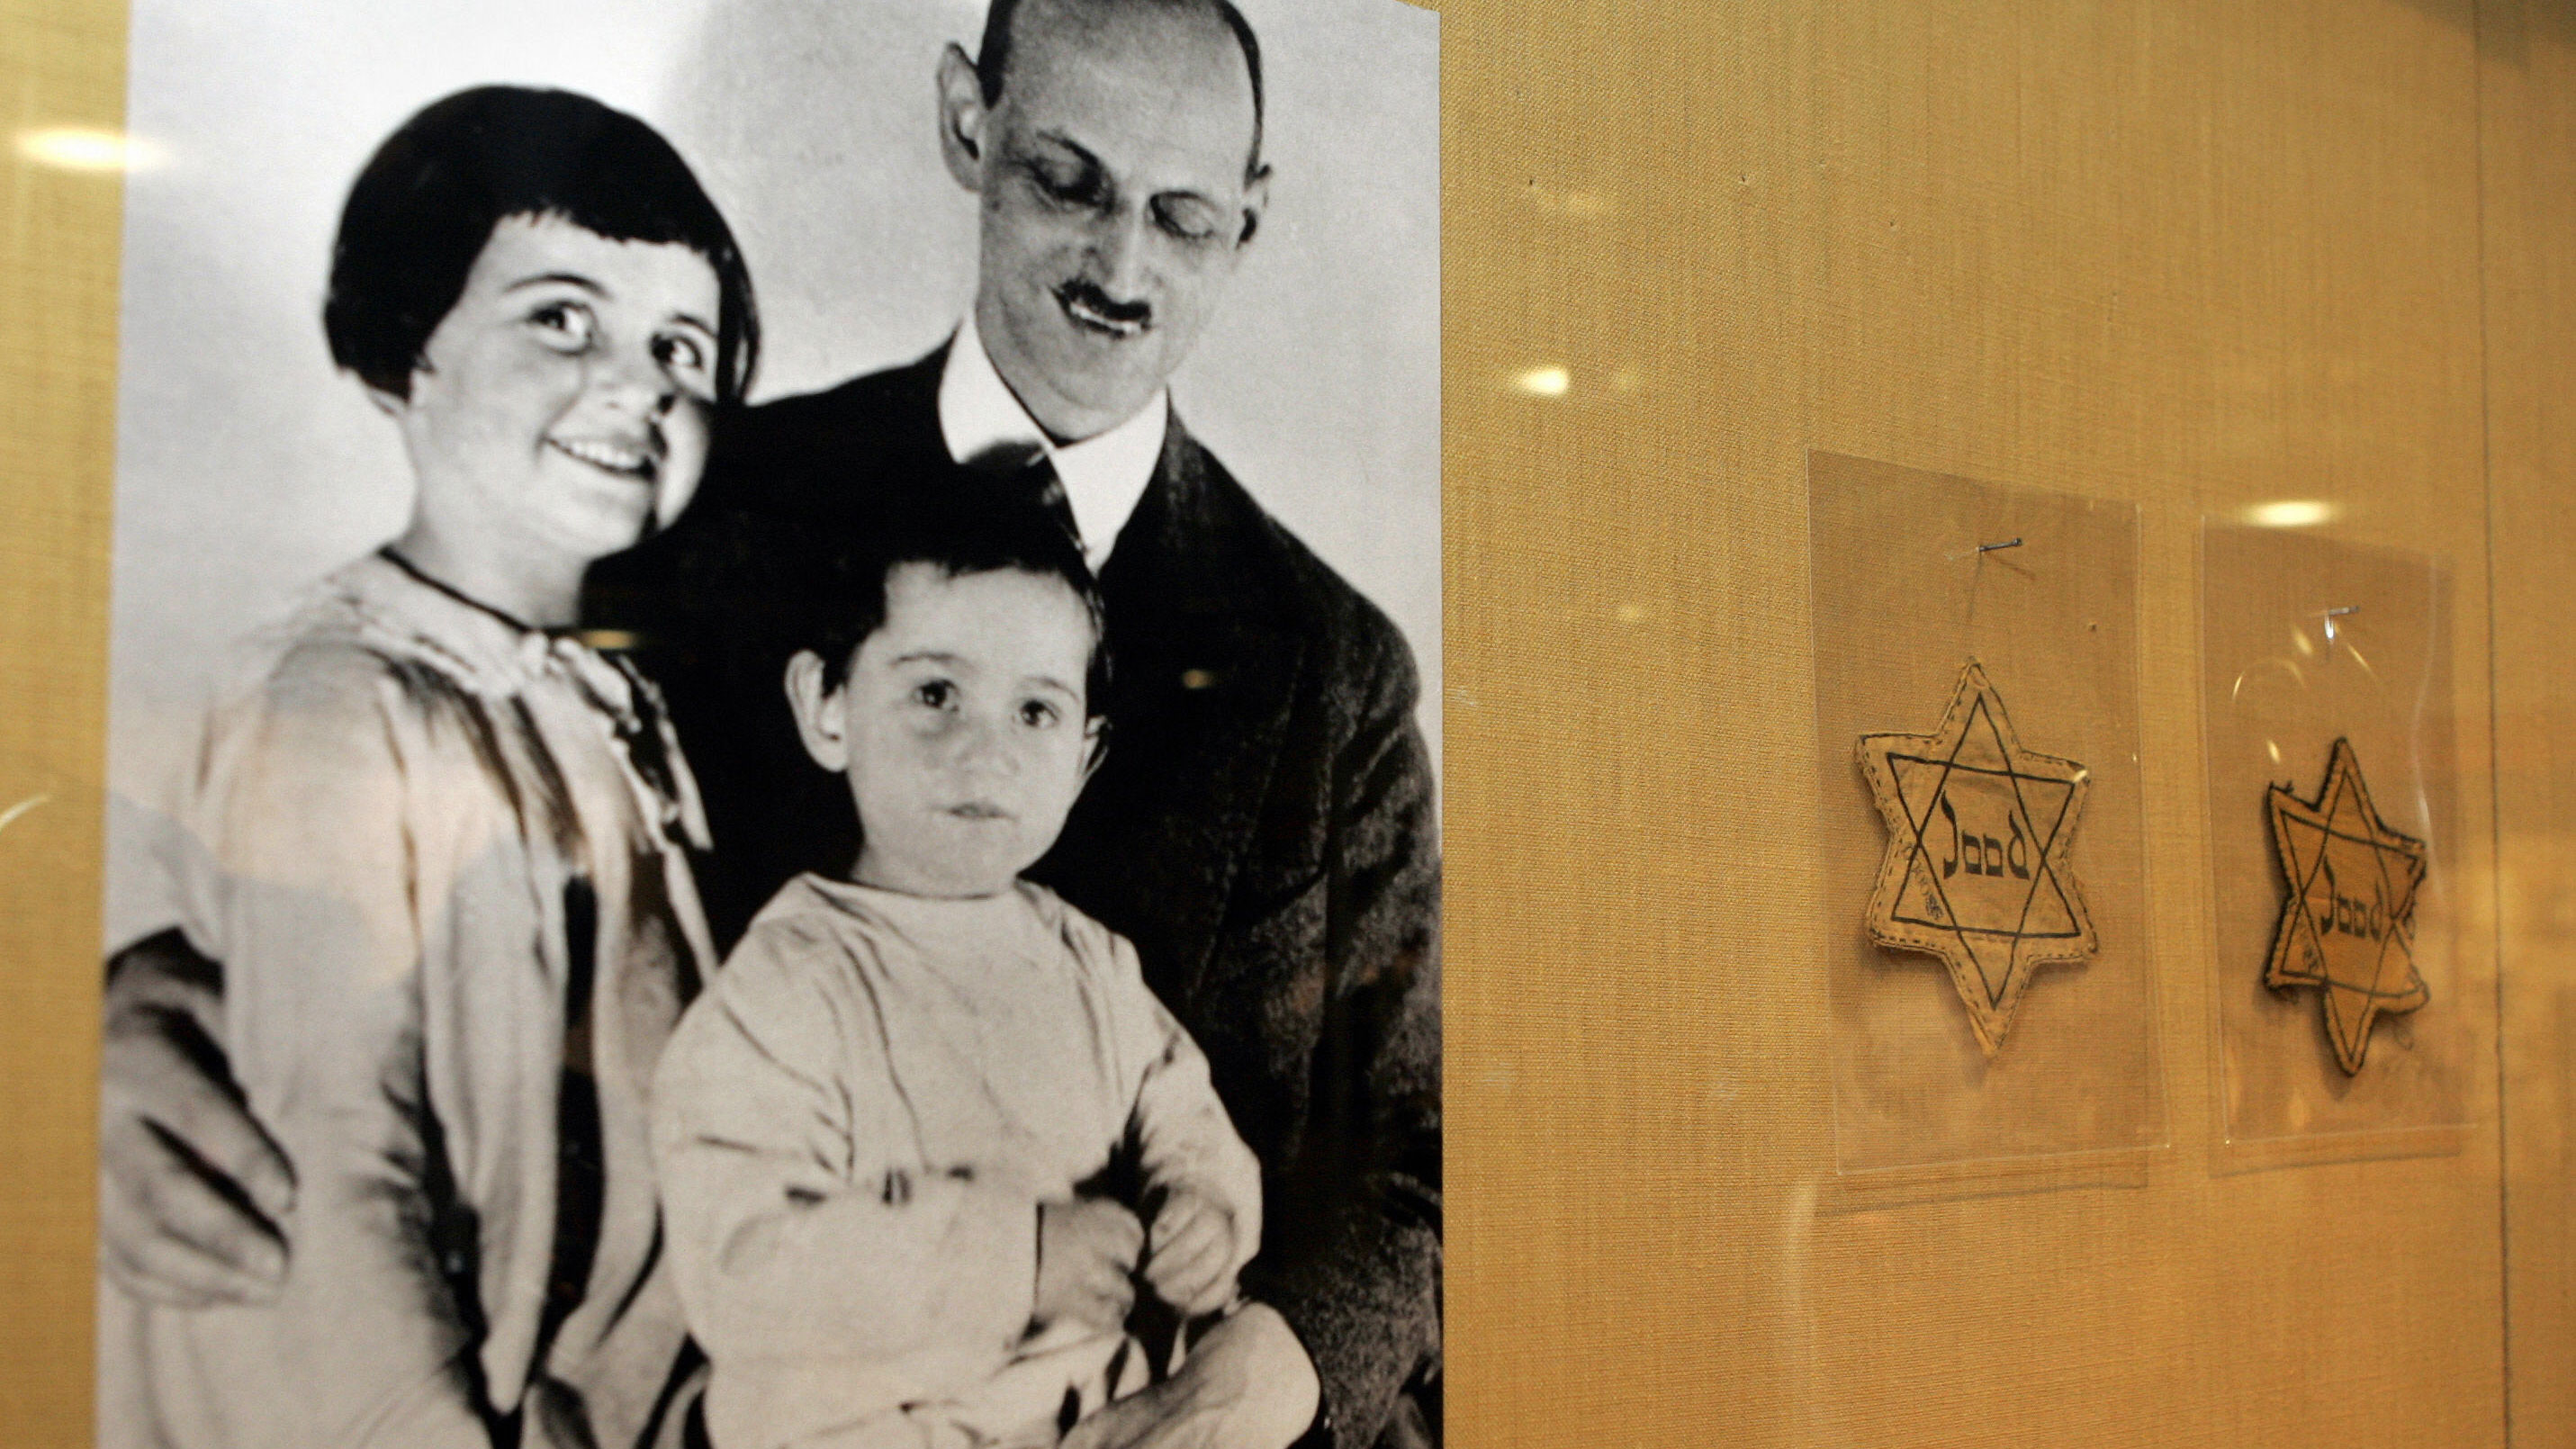 Anne Frank's Family Tried Repeatedly to Immigrate to the U.S.